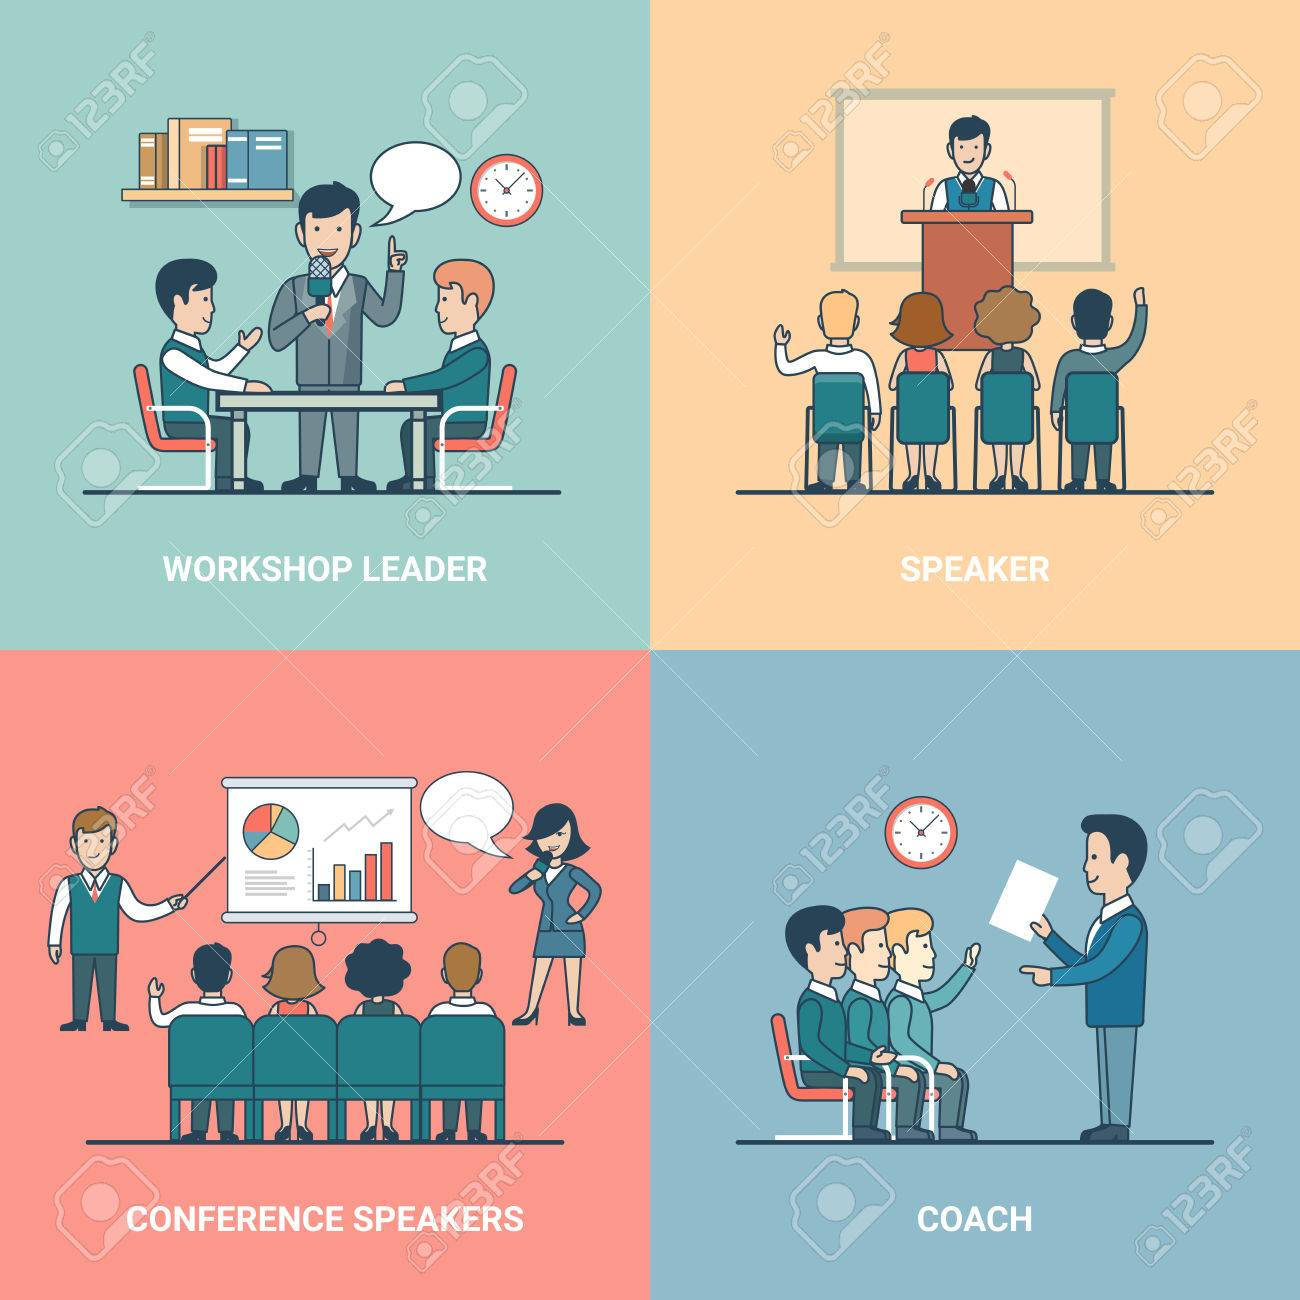 Linear Flat training variations in office rooms with furniture vector illustration set. Conference Speaker, Coach, Workshop Leader and listeners characters. Business professional Retraining concept. - 63745985